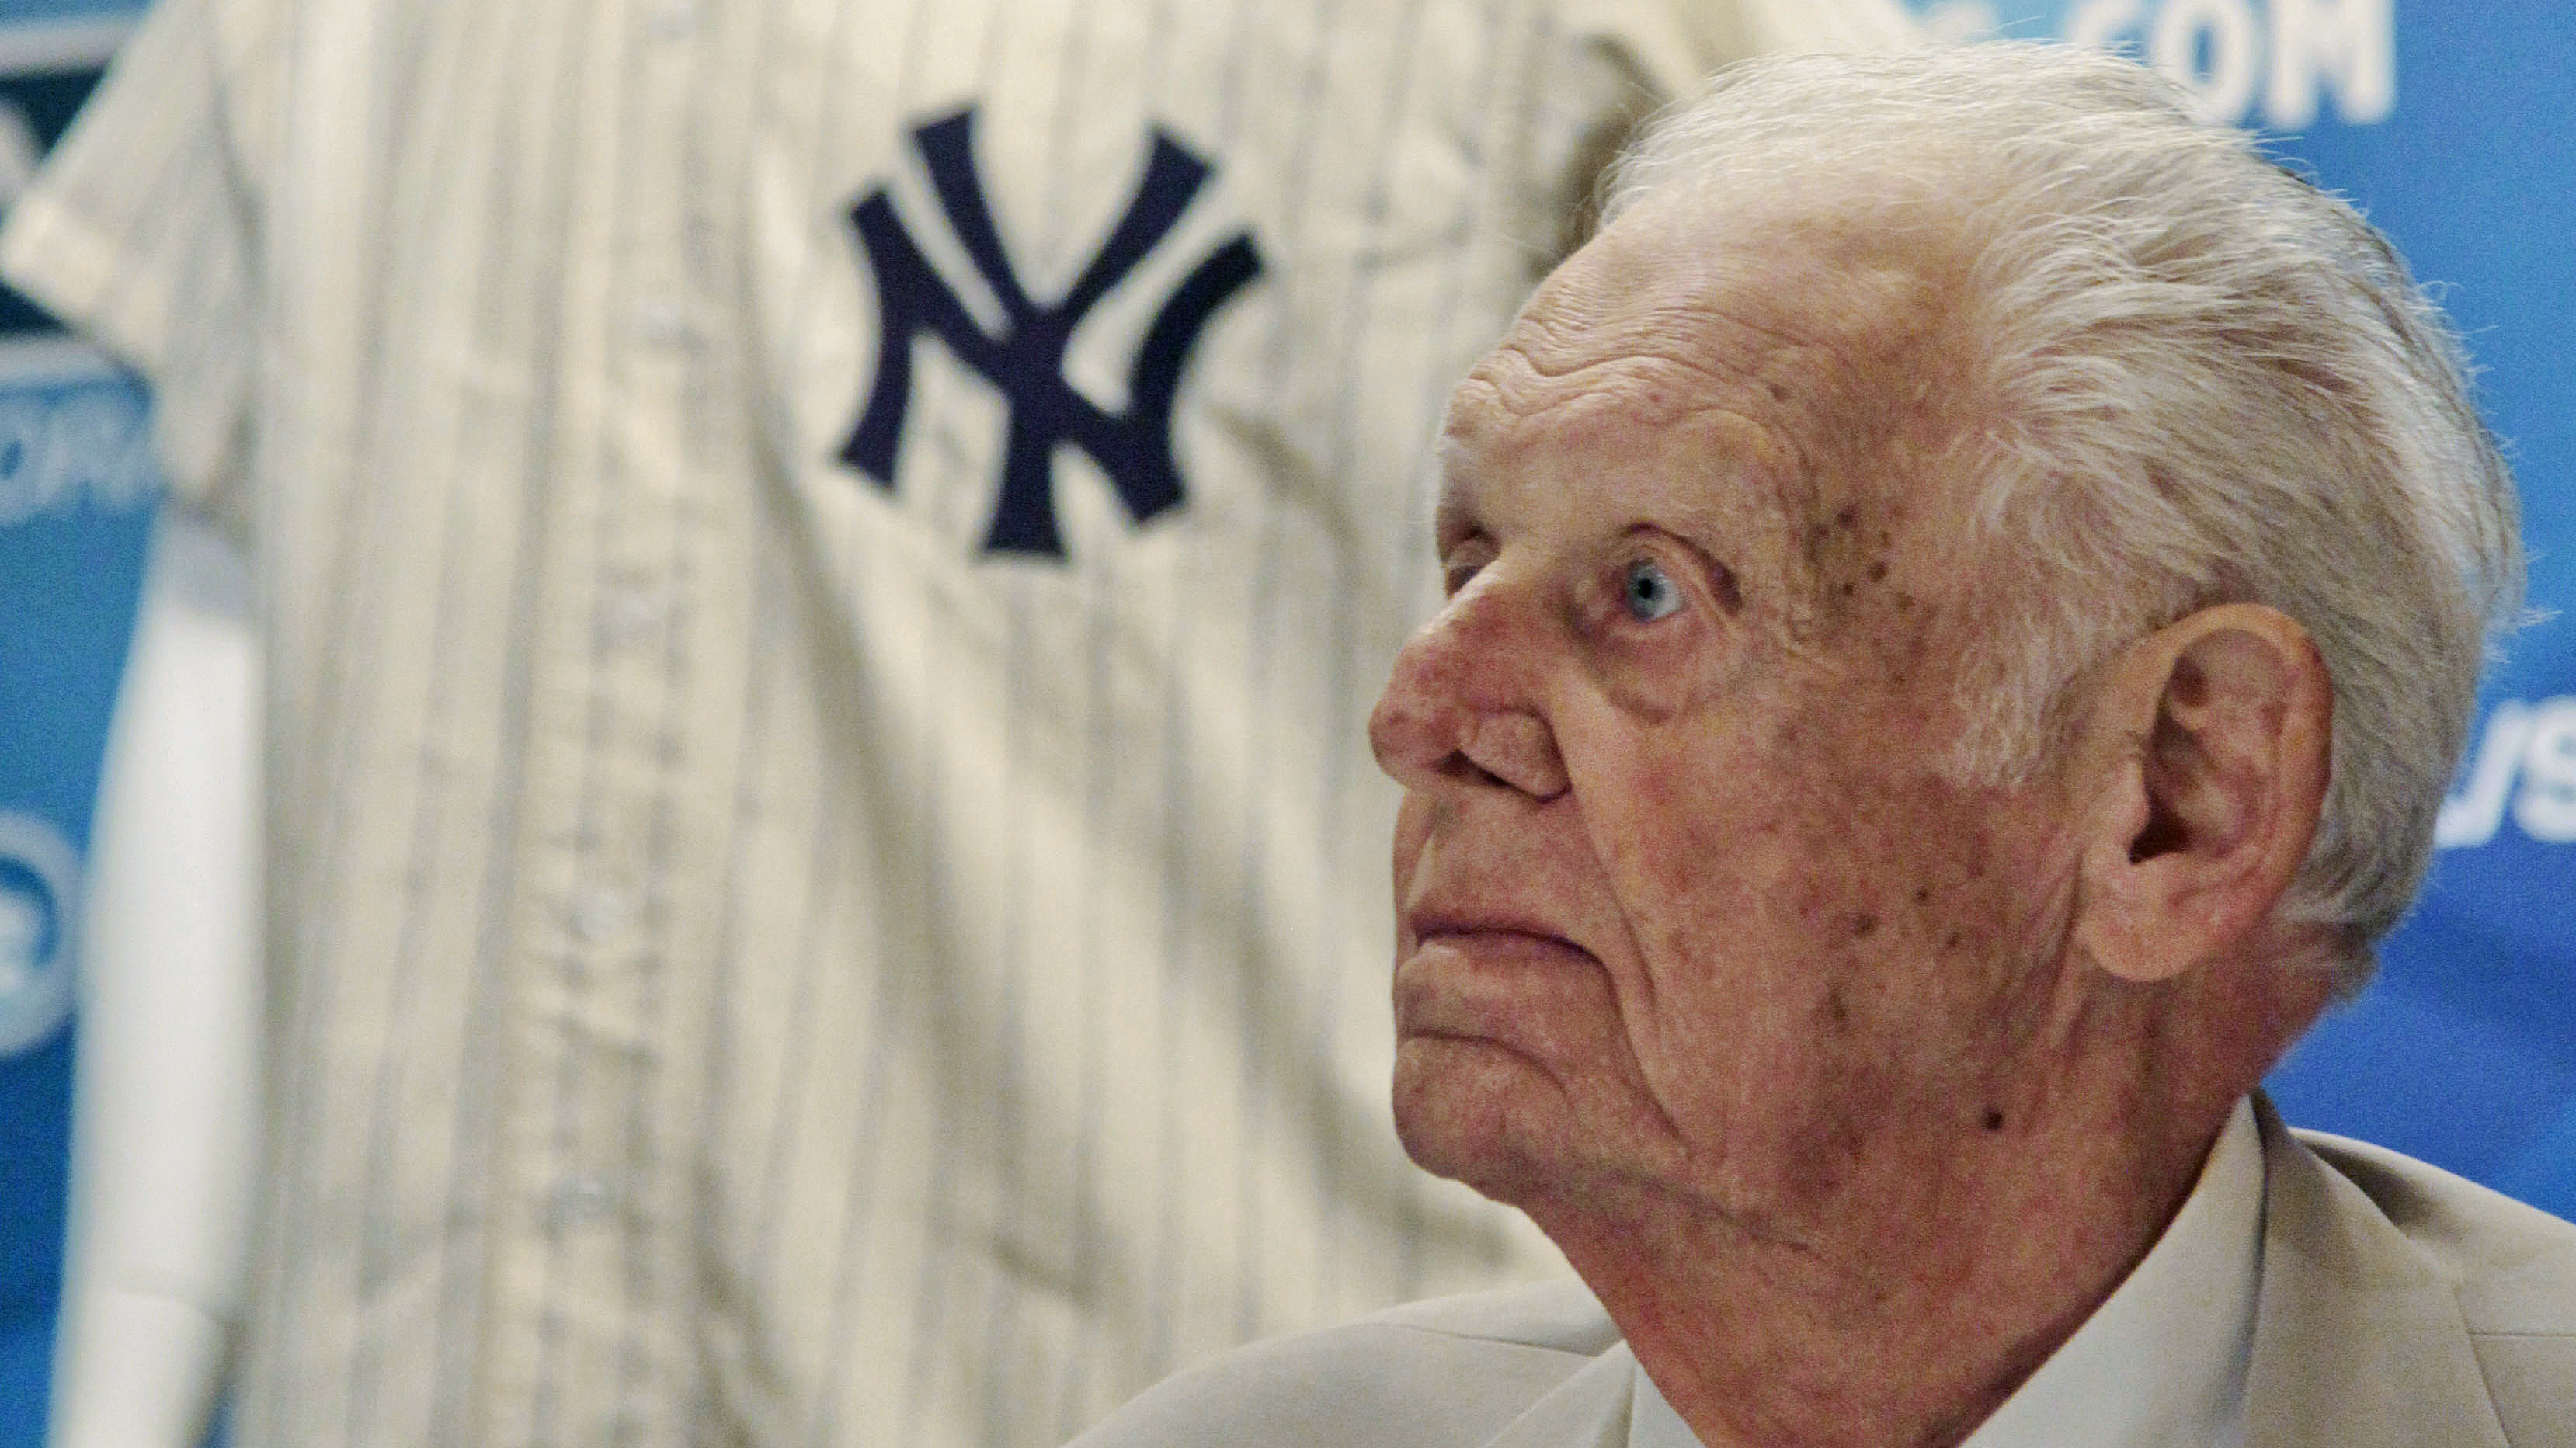 Don Larsen, Only Pitcher To Throw Perfect World Series Game, Dies At 90